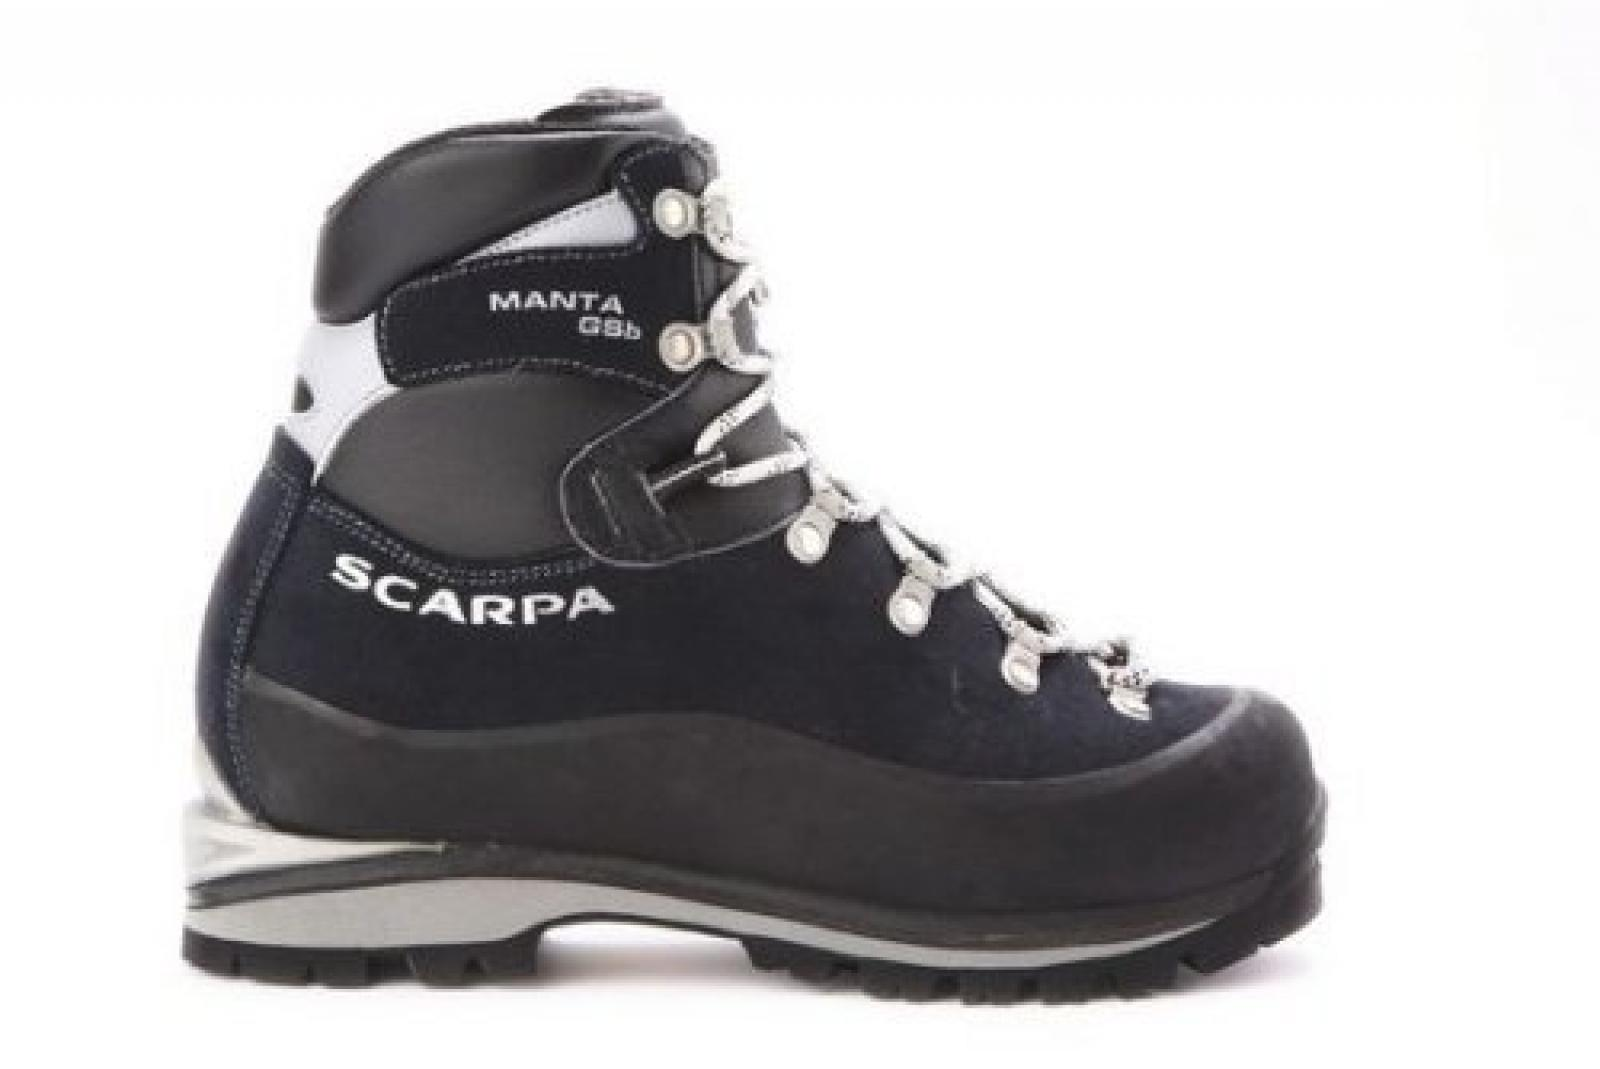 Manta Mountaineering Boots - size: 41 EU - Colour: Navy